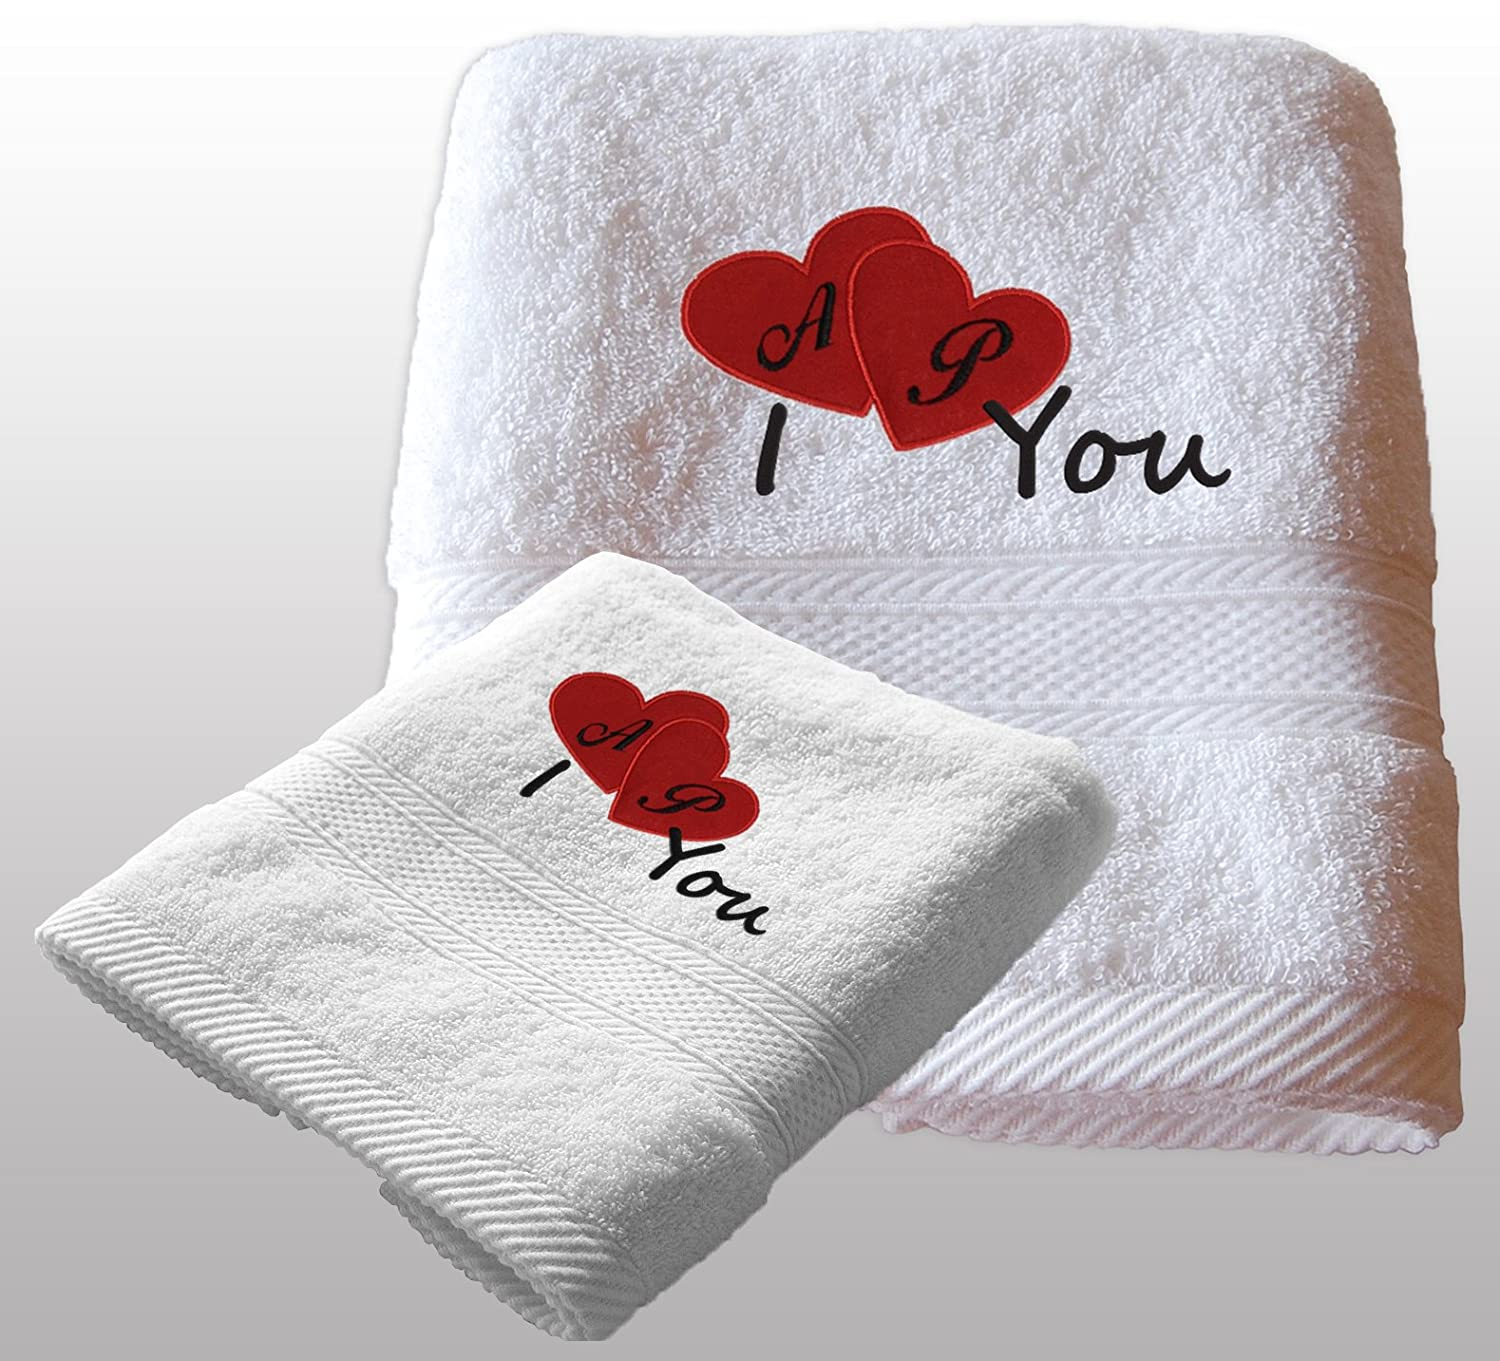 New Valentine White Monogrammed Hand Towel with Red Hearts Embroidery Design